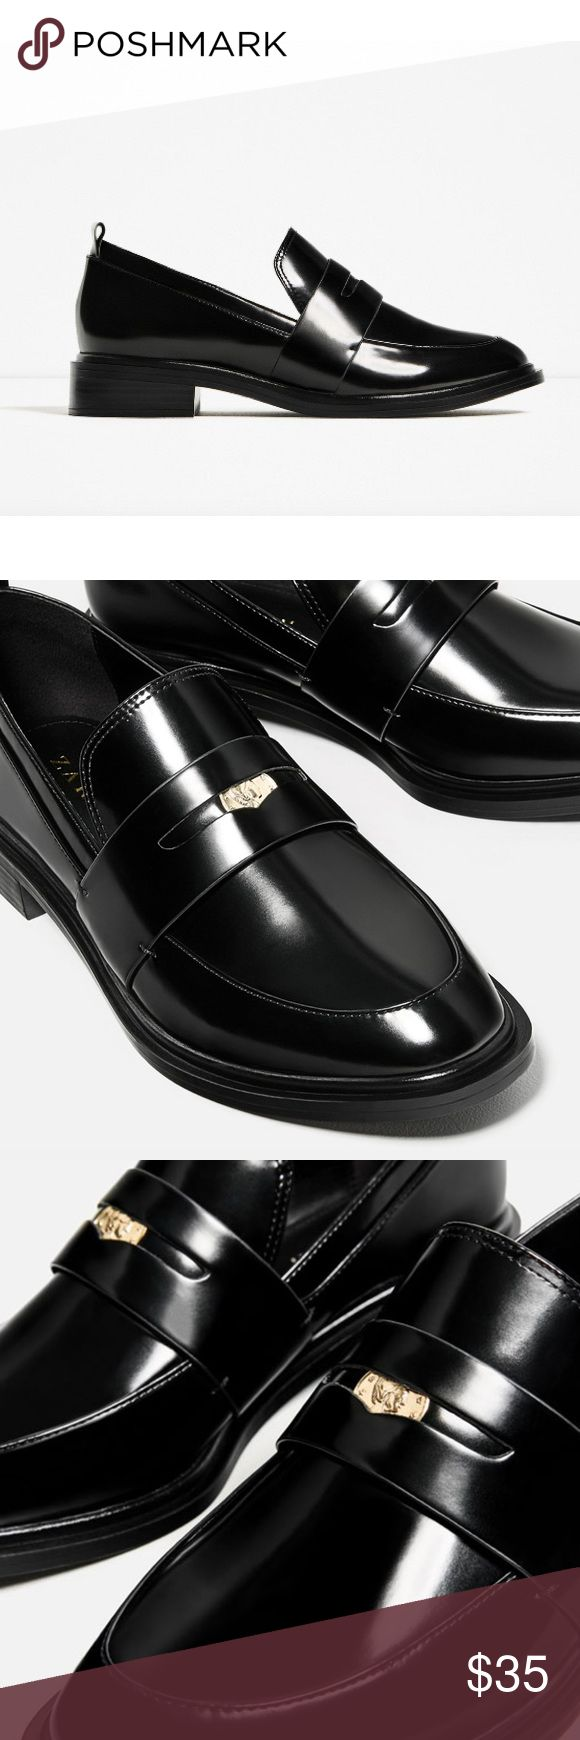 ZARA Black Penny Loafers ZARA black penny loafers! New with tags + never worn. Super cute coin detail and chunky heel. 100% polyurethane. Zara Shoes Flats & Loafers